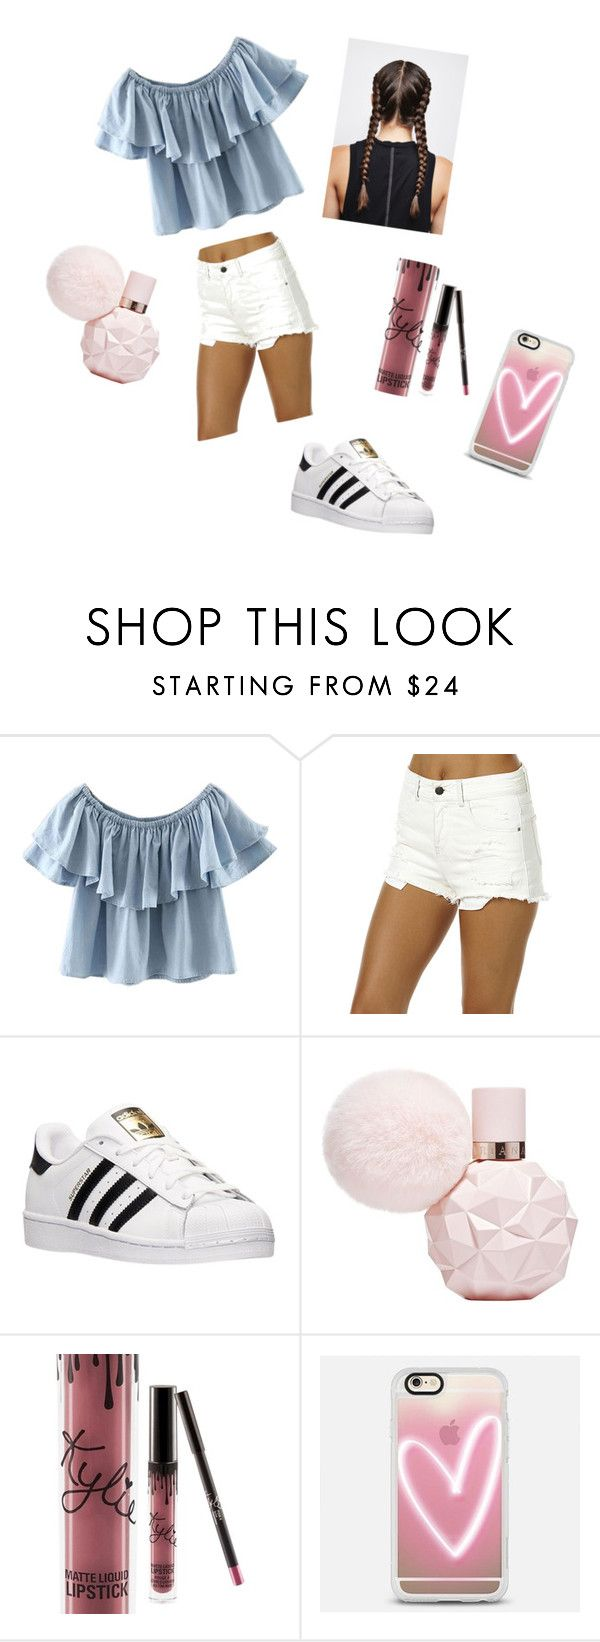 """Aussie Xmas outfit"" by maddy-lane235 on Polyvore featuring WithChic, Billabong, adidas, Kylie Cosmetics and Casetify"